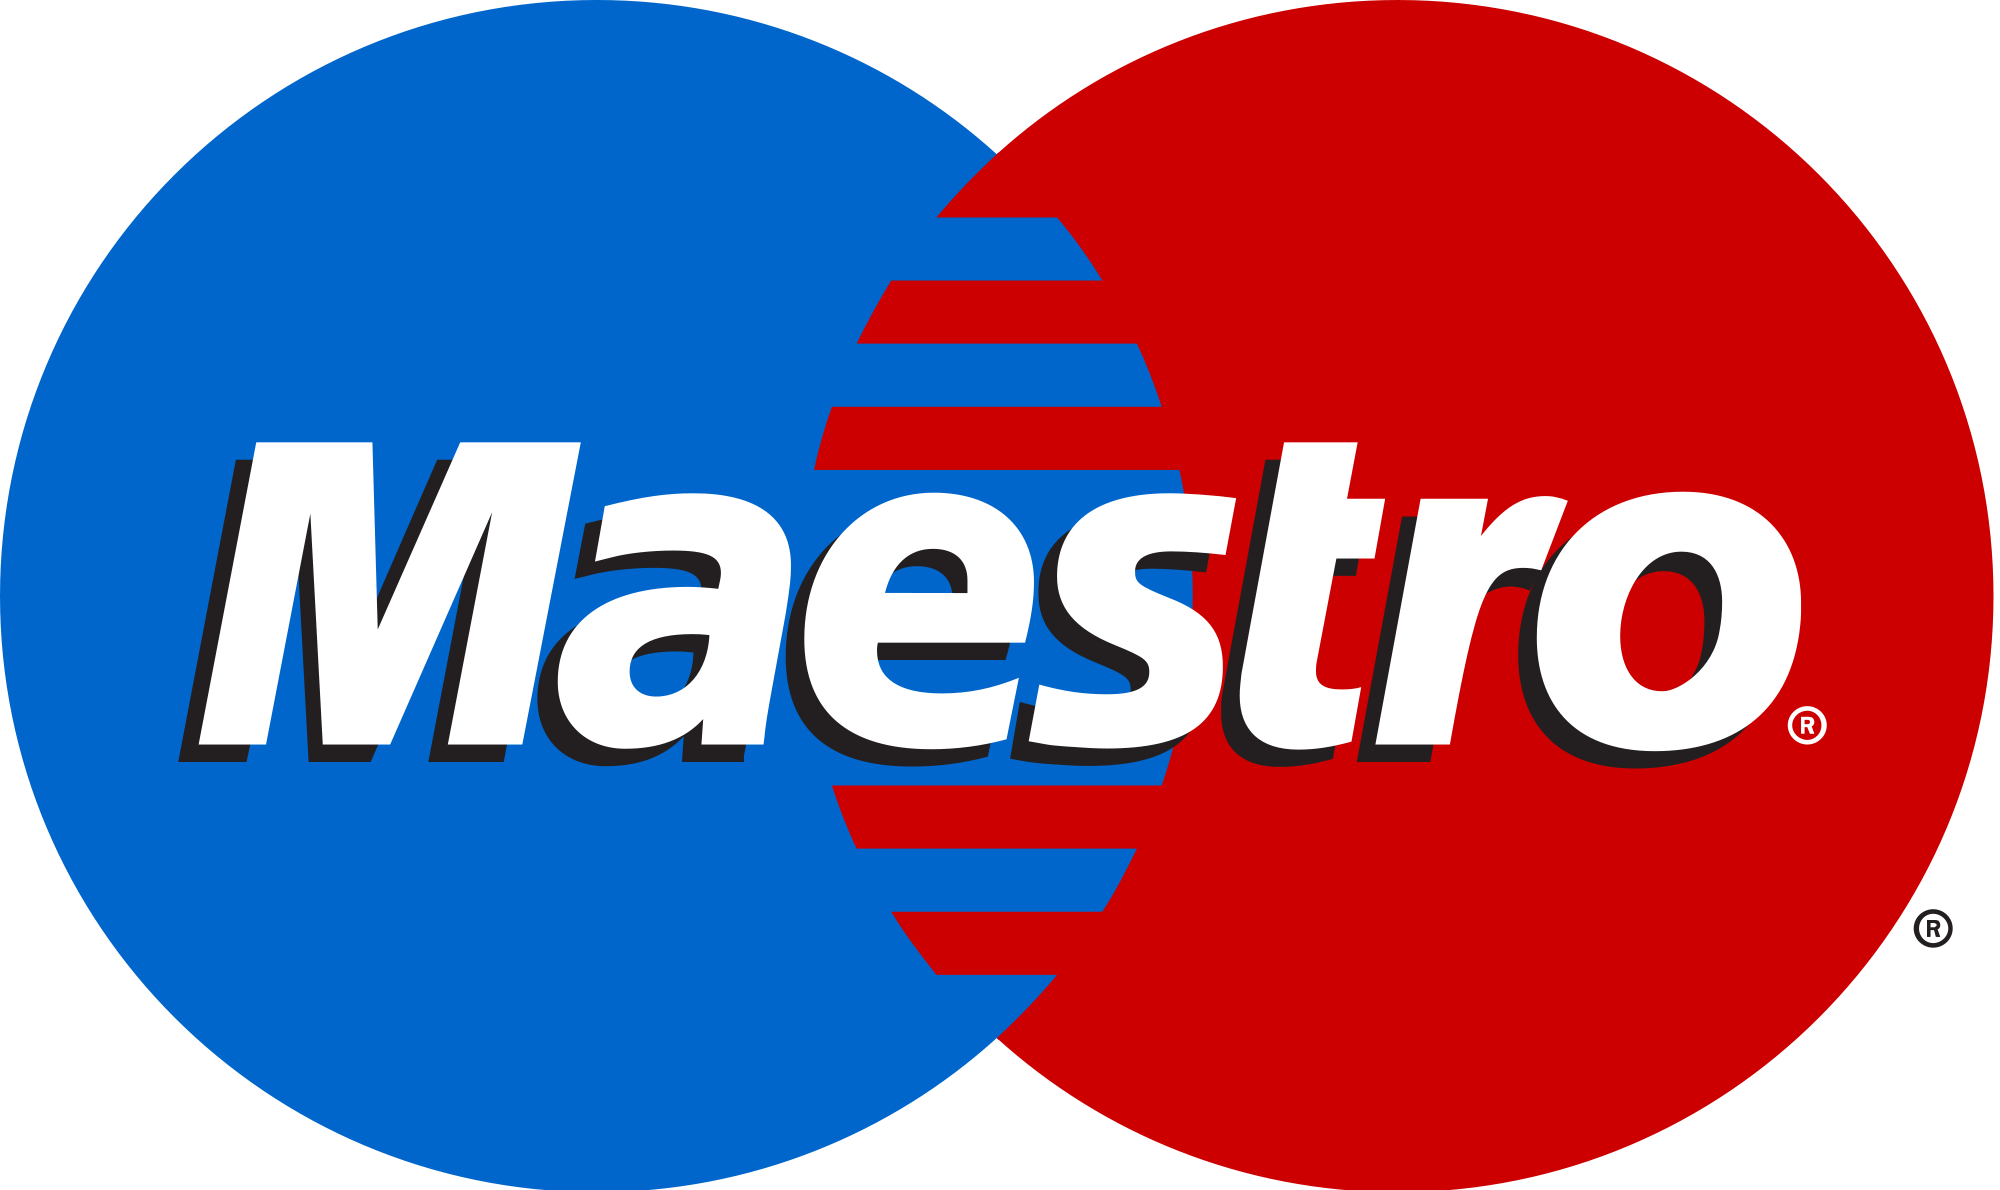 maestro-payment